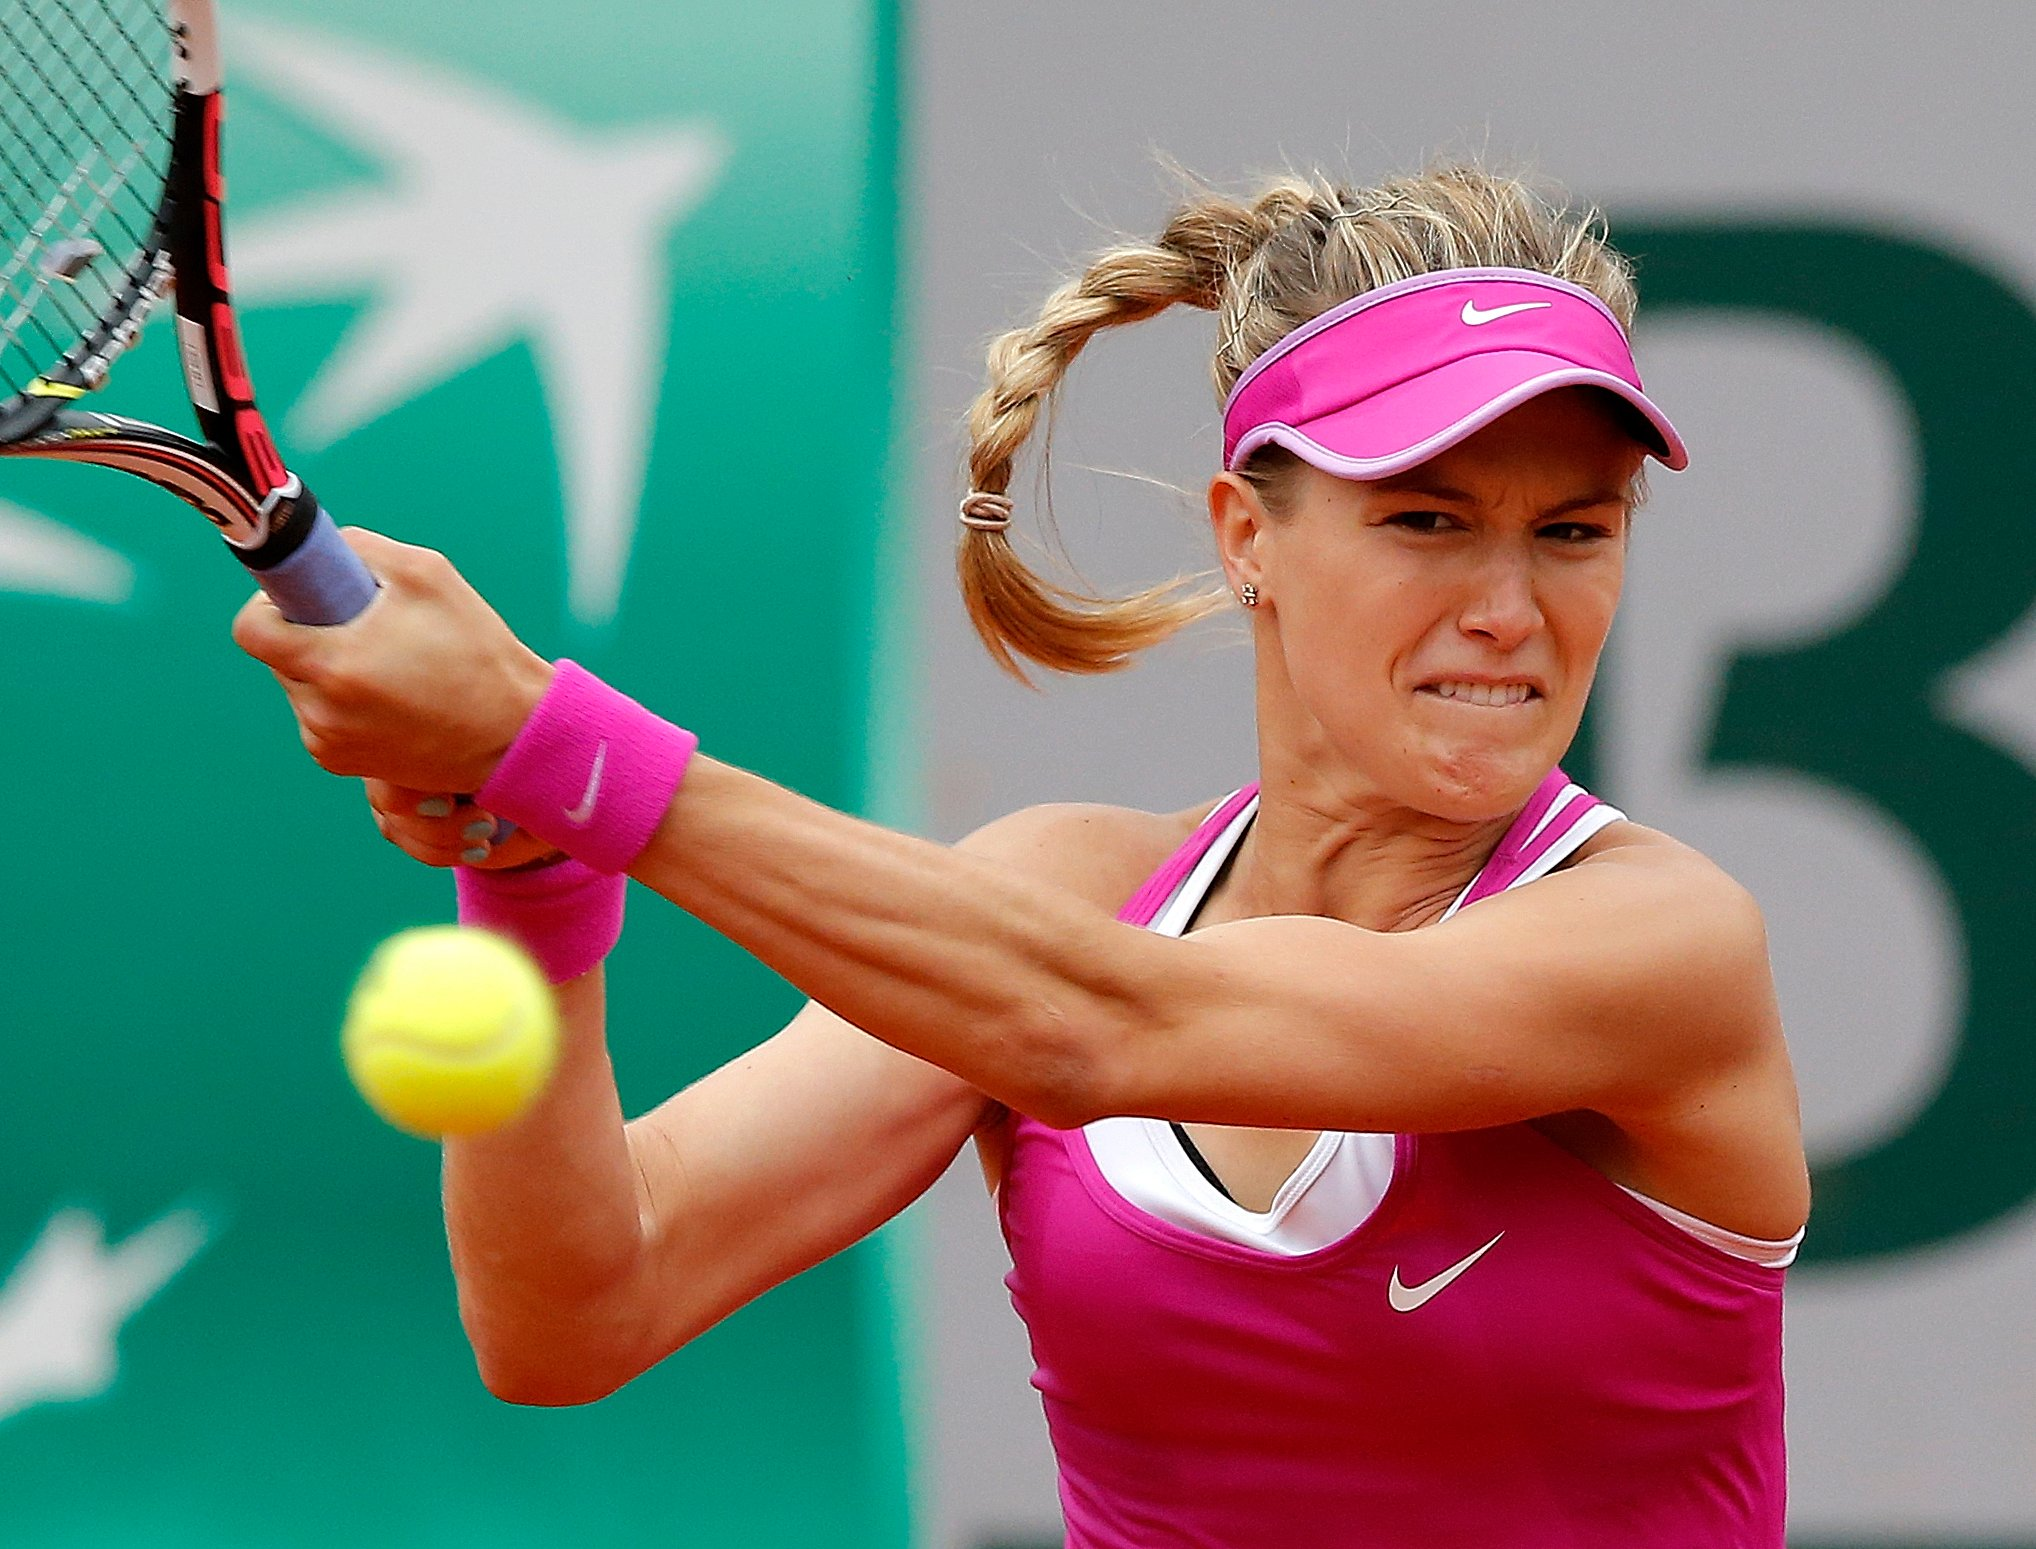 correction_france_tennis_french_open7511_r940.jpg